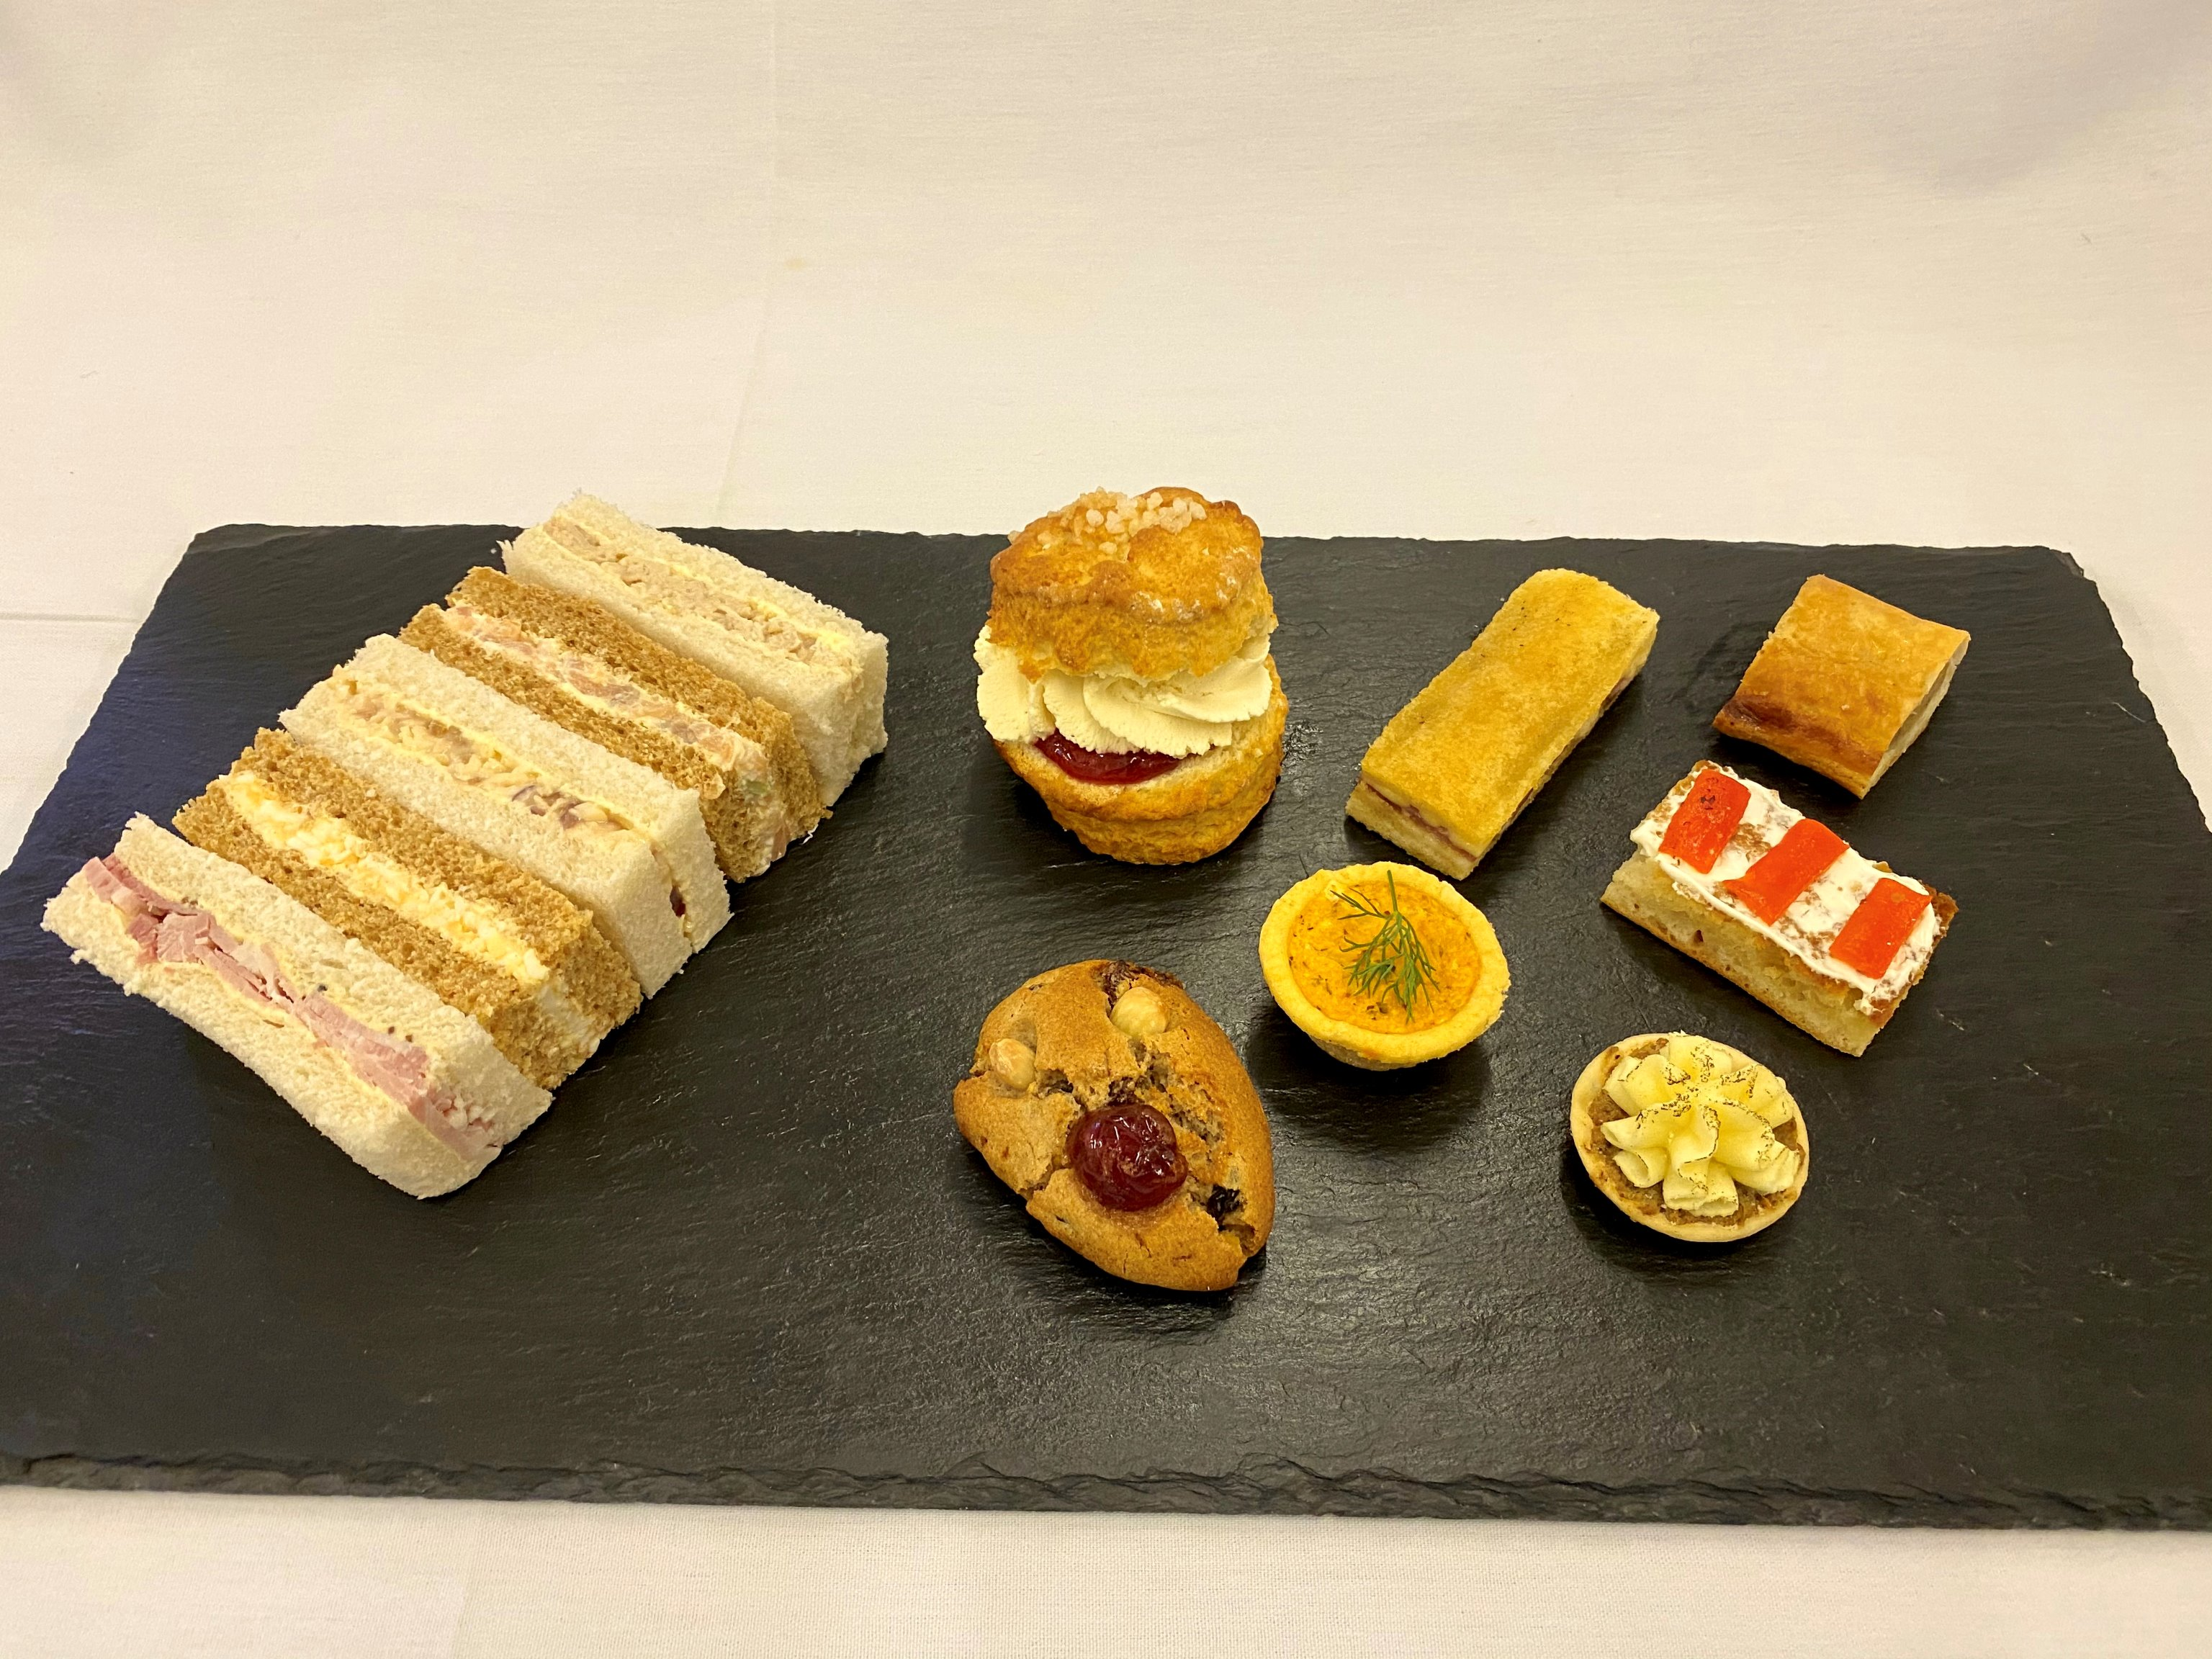 C. Savoury Afternoon Tea